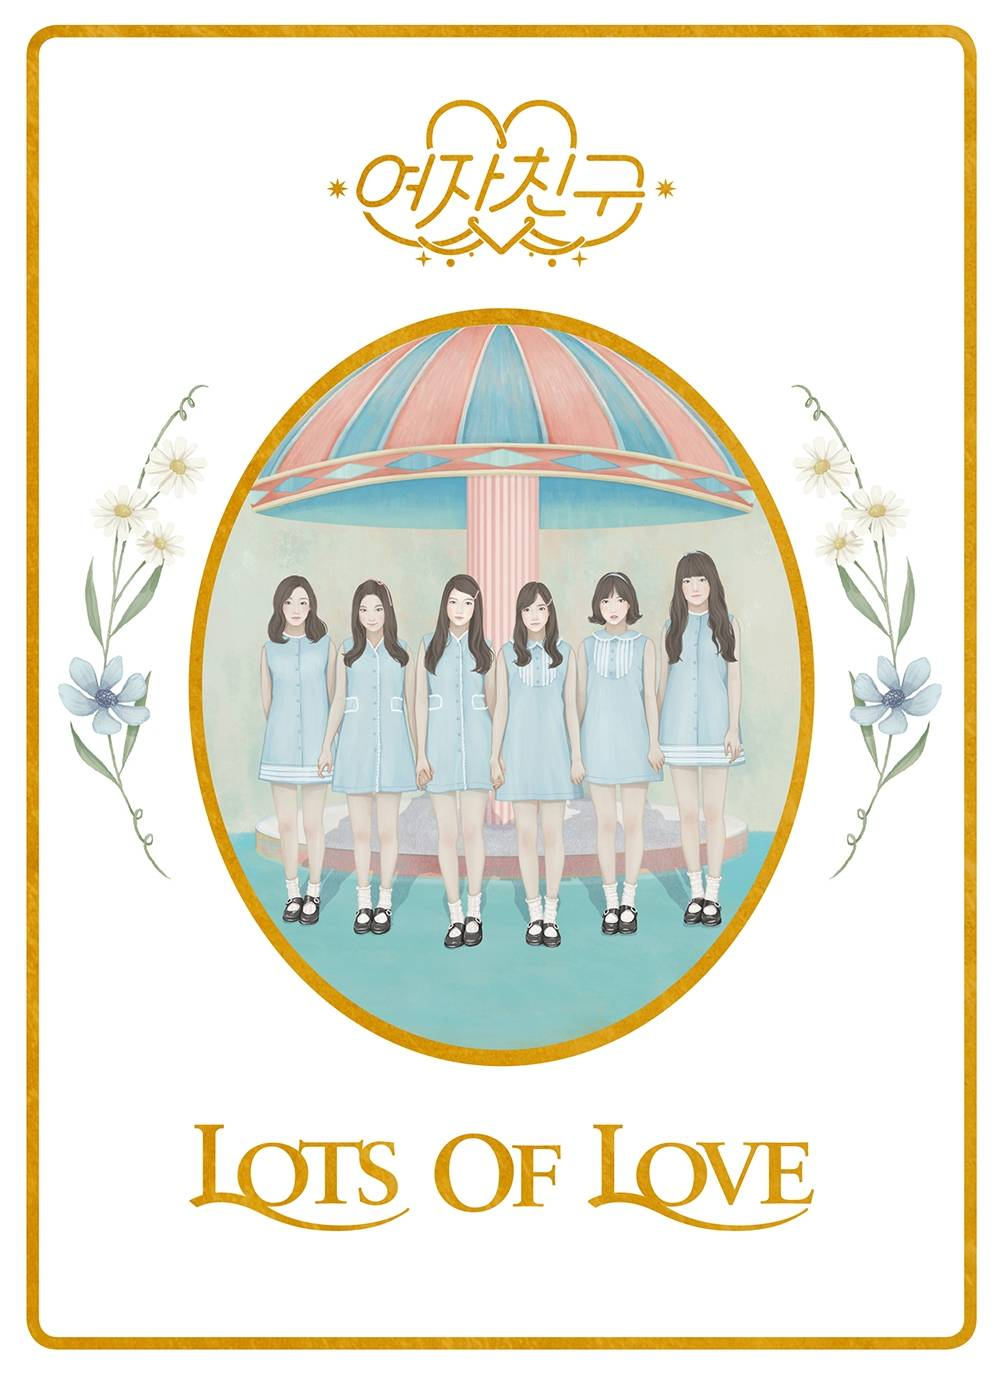 GFRIEND - 1st Album: LOL CD (Lots of Love version)